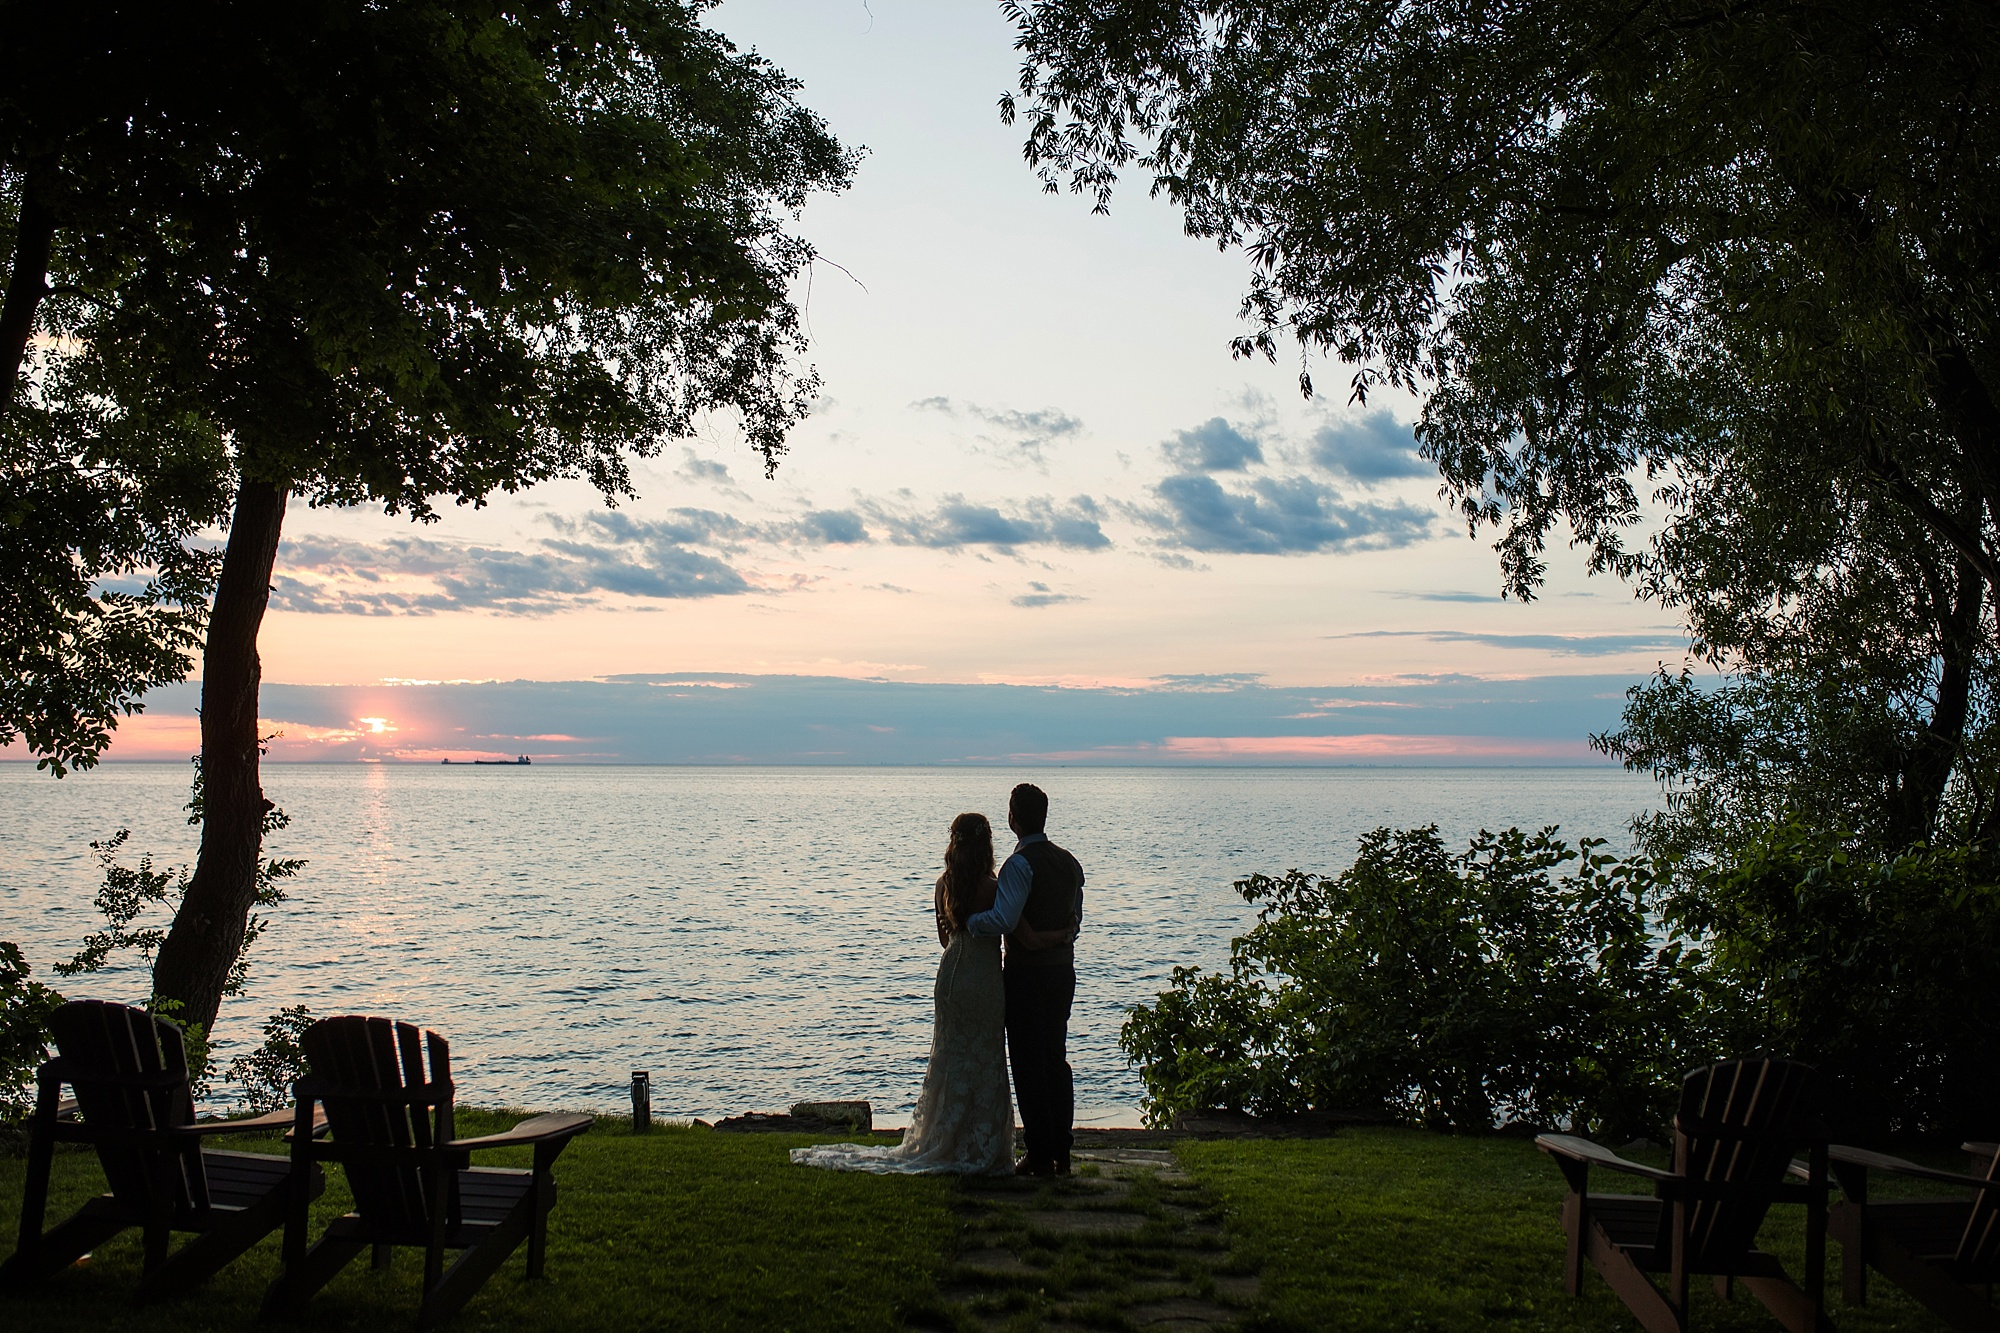 niagaraonthelake-backyardwedding_0067.jpg